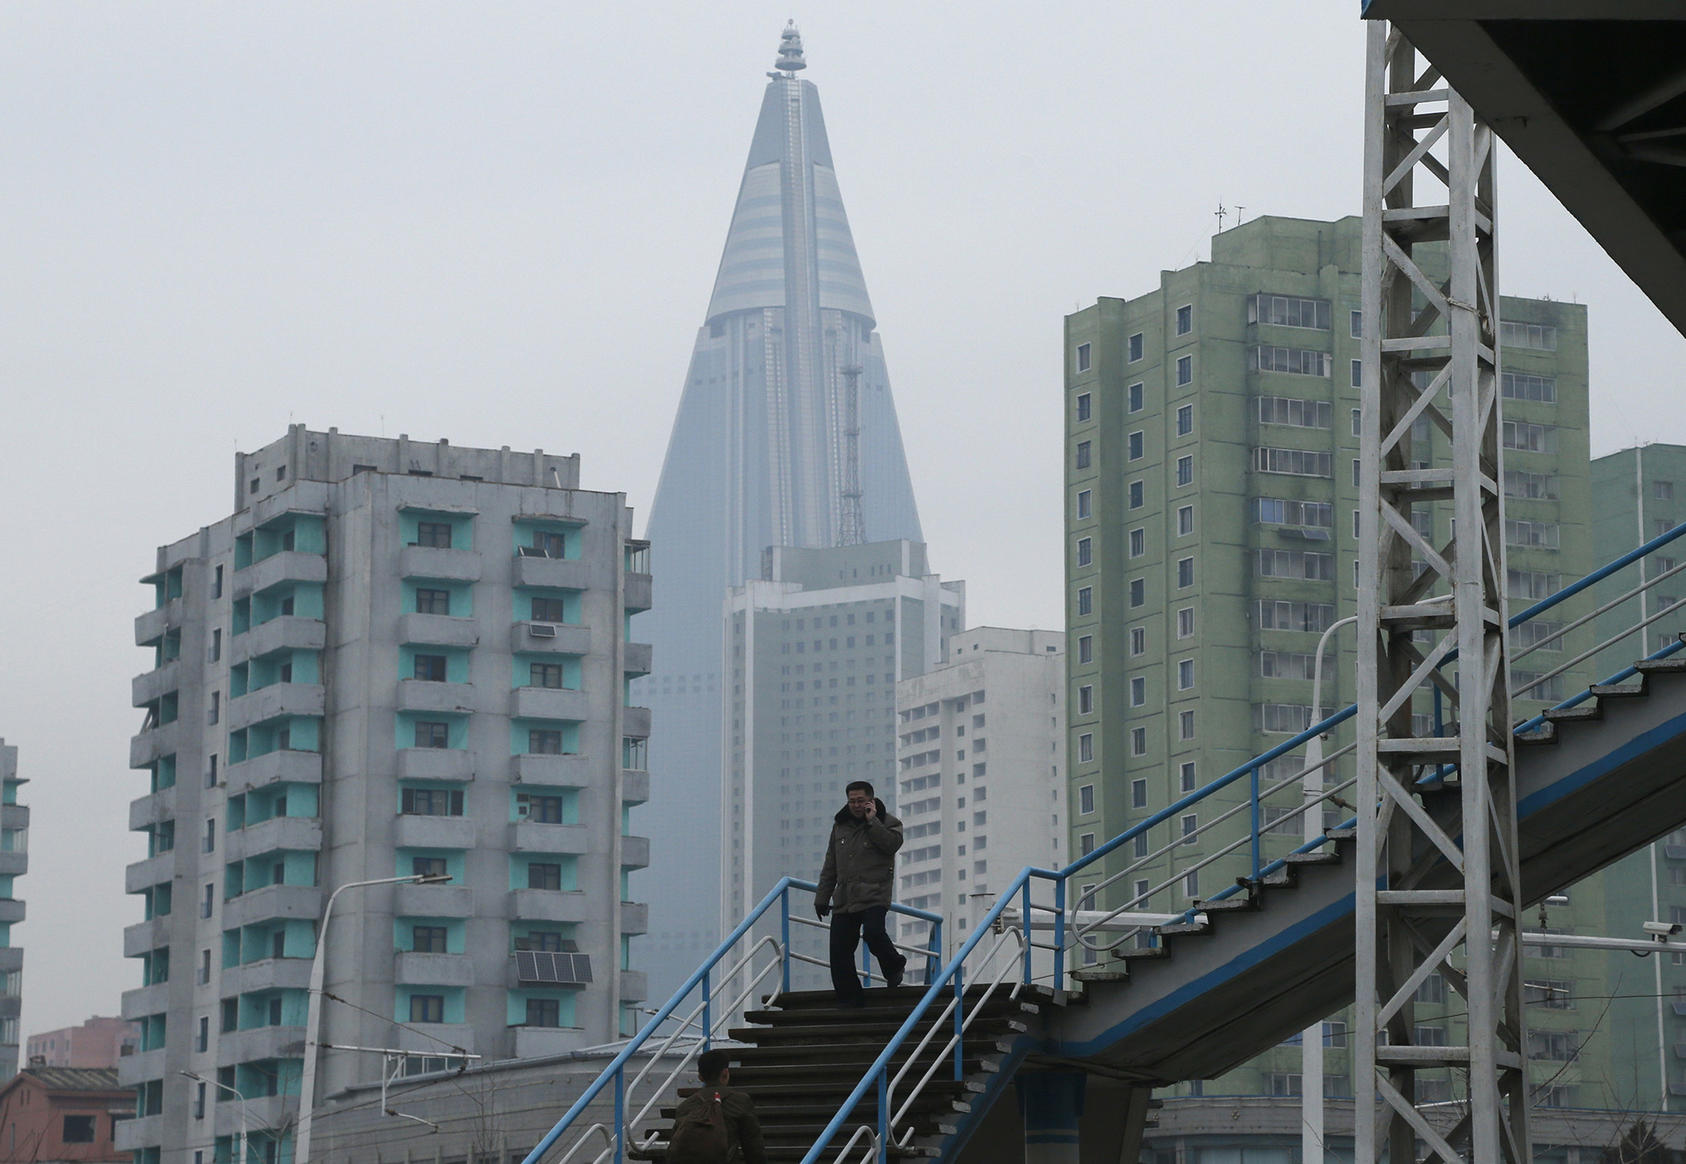 A man talks on his mobile phone while walking in downtown Pyongyang on December 15, 2018. (Photo by Dita Alangkara/AP)